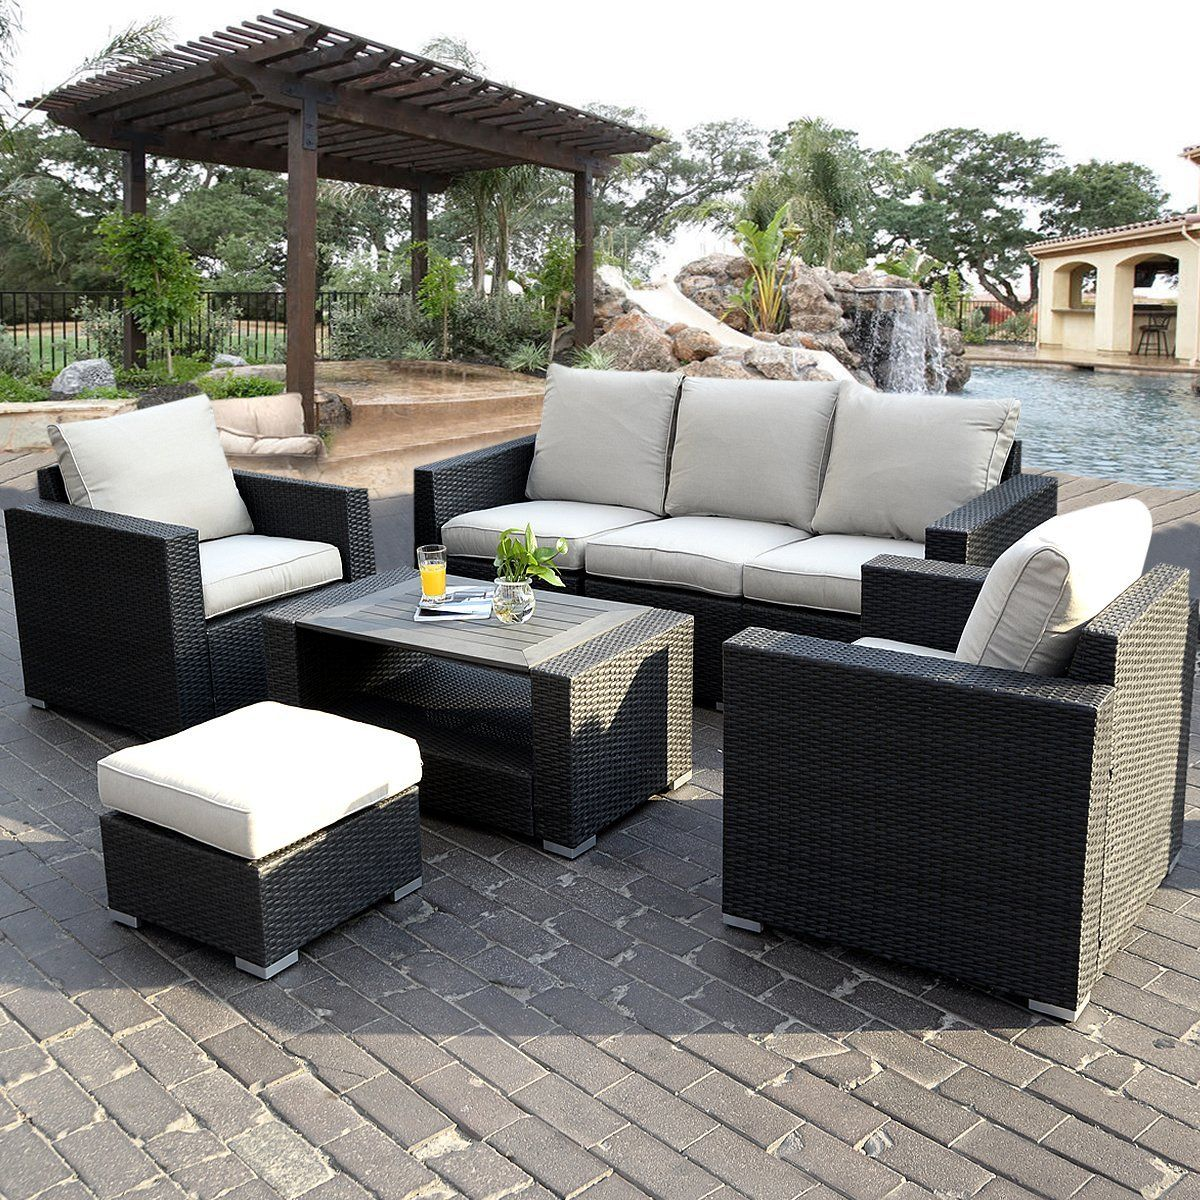 wicker sofa sets uk camper slipcovers fds 7pc rattan outdoor garden furniture patio corner set pe conservatory amazon co outdoors